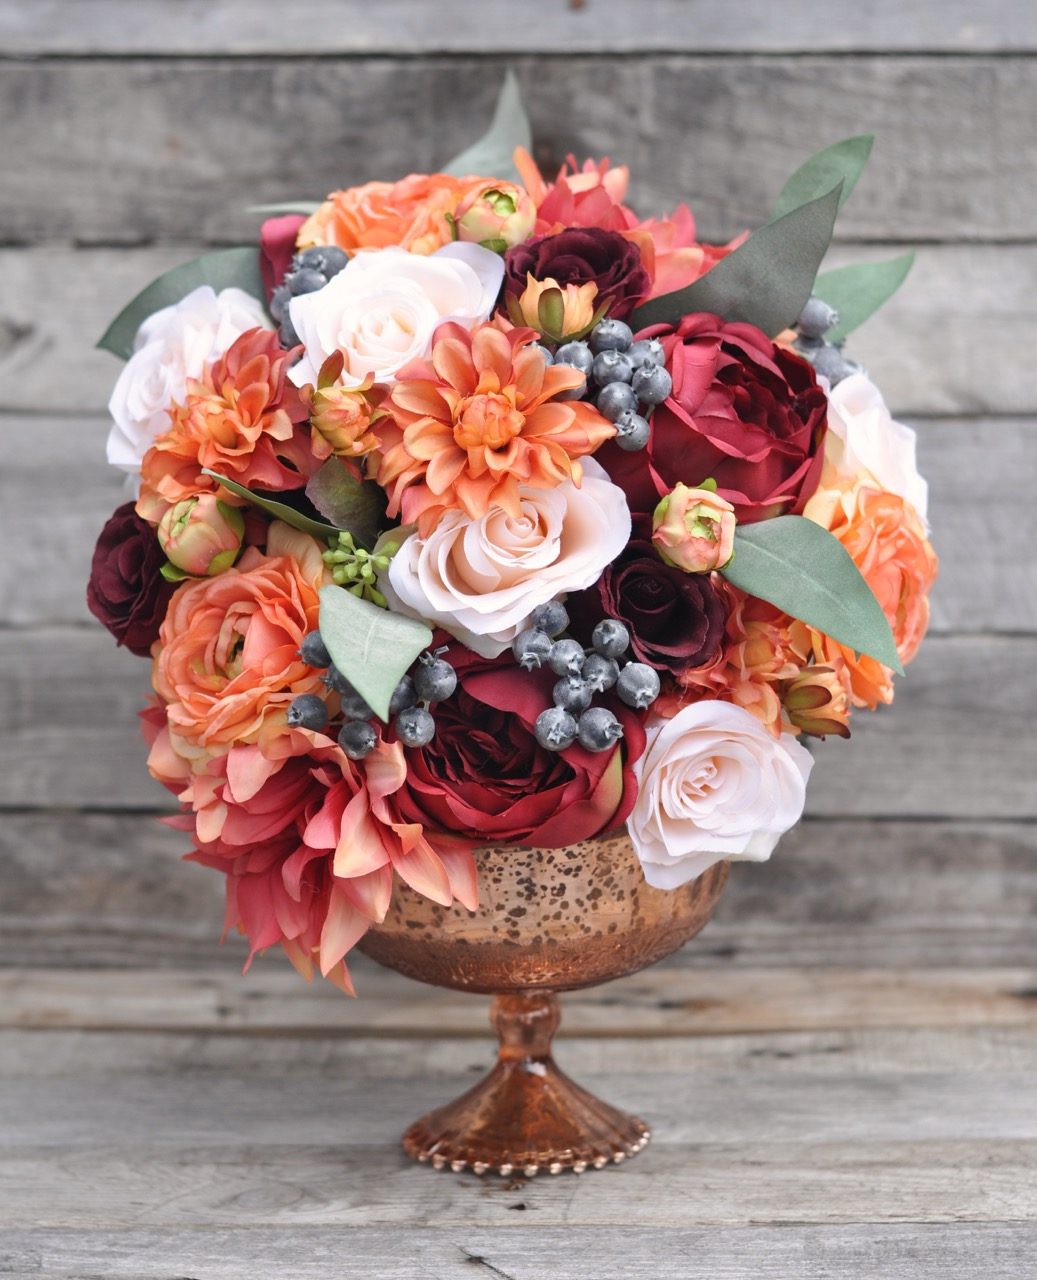 Fall bouquet in compote dish 1 - 1.jpg